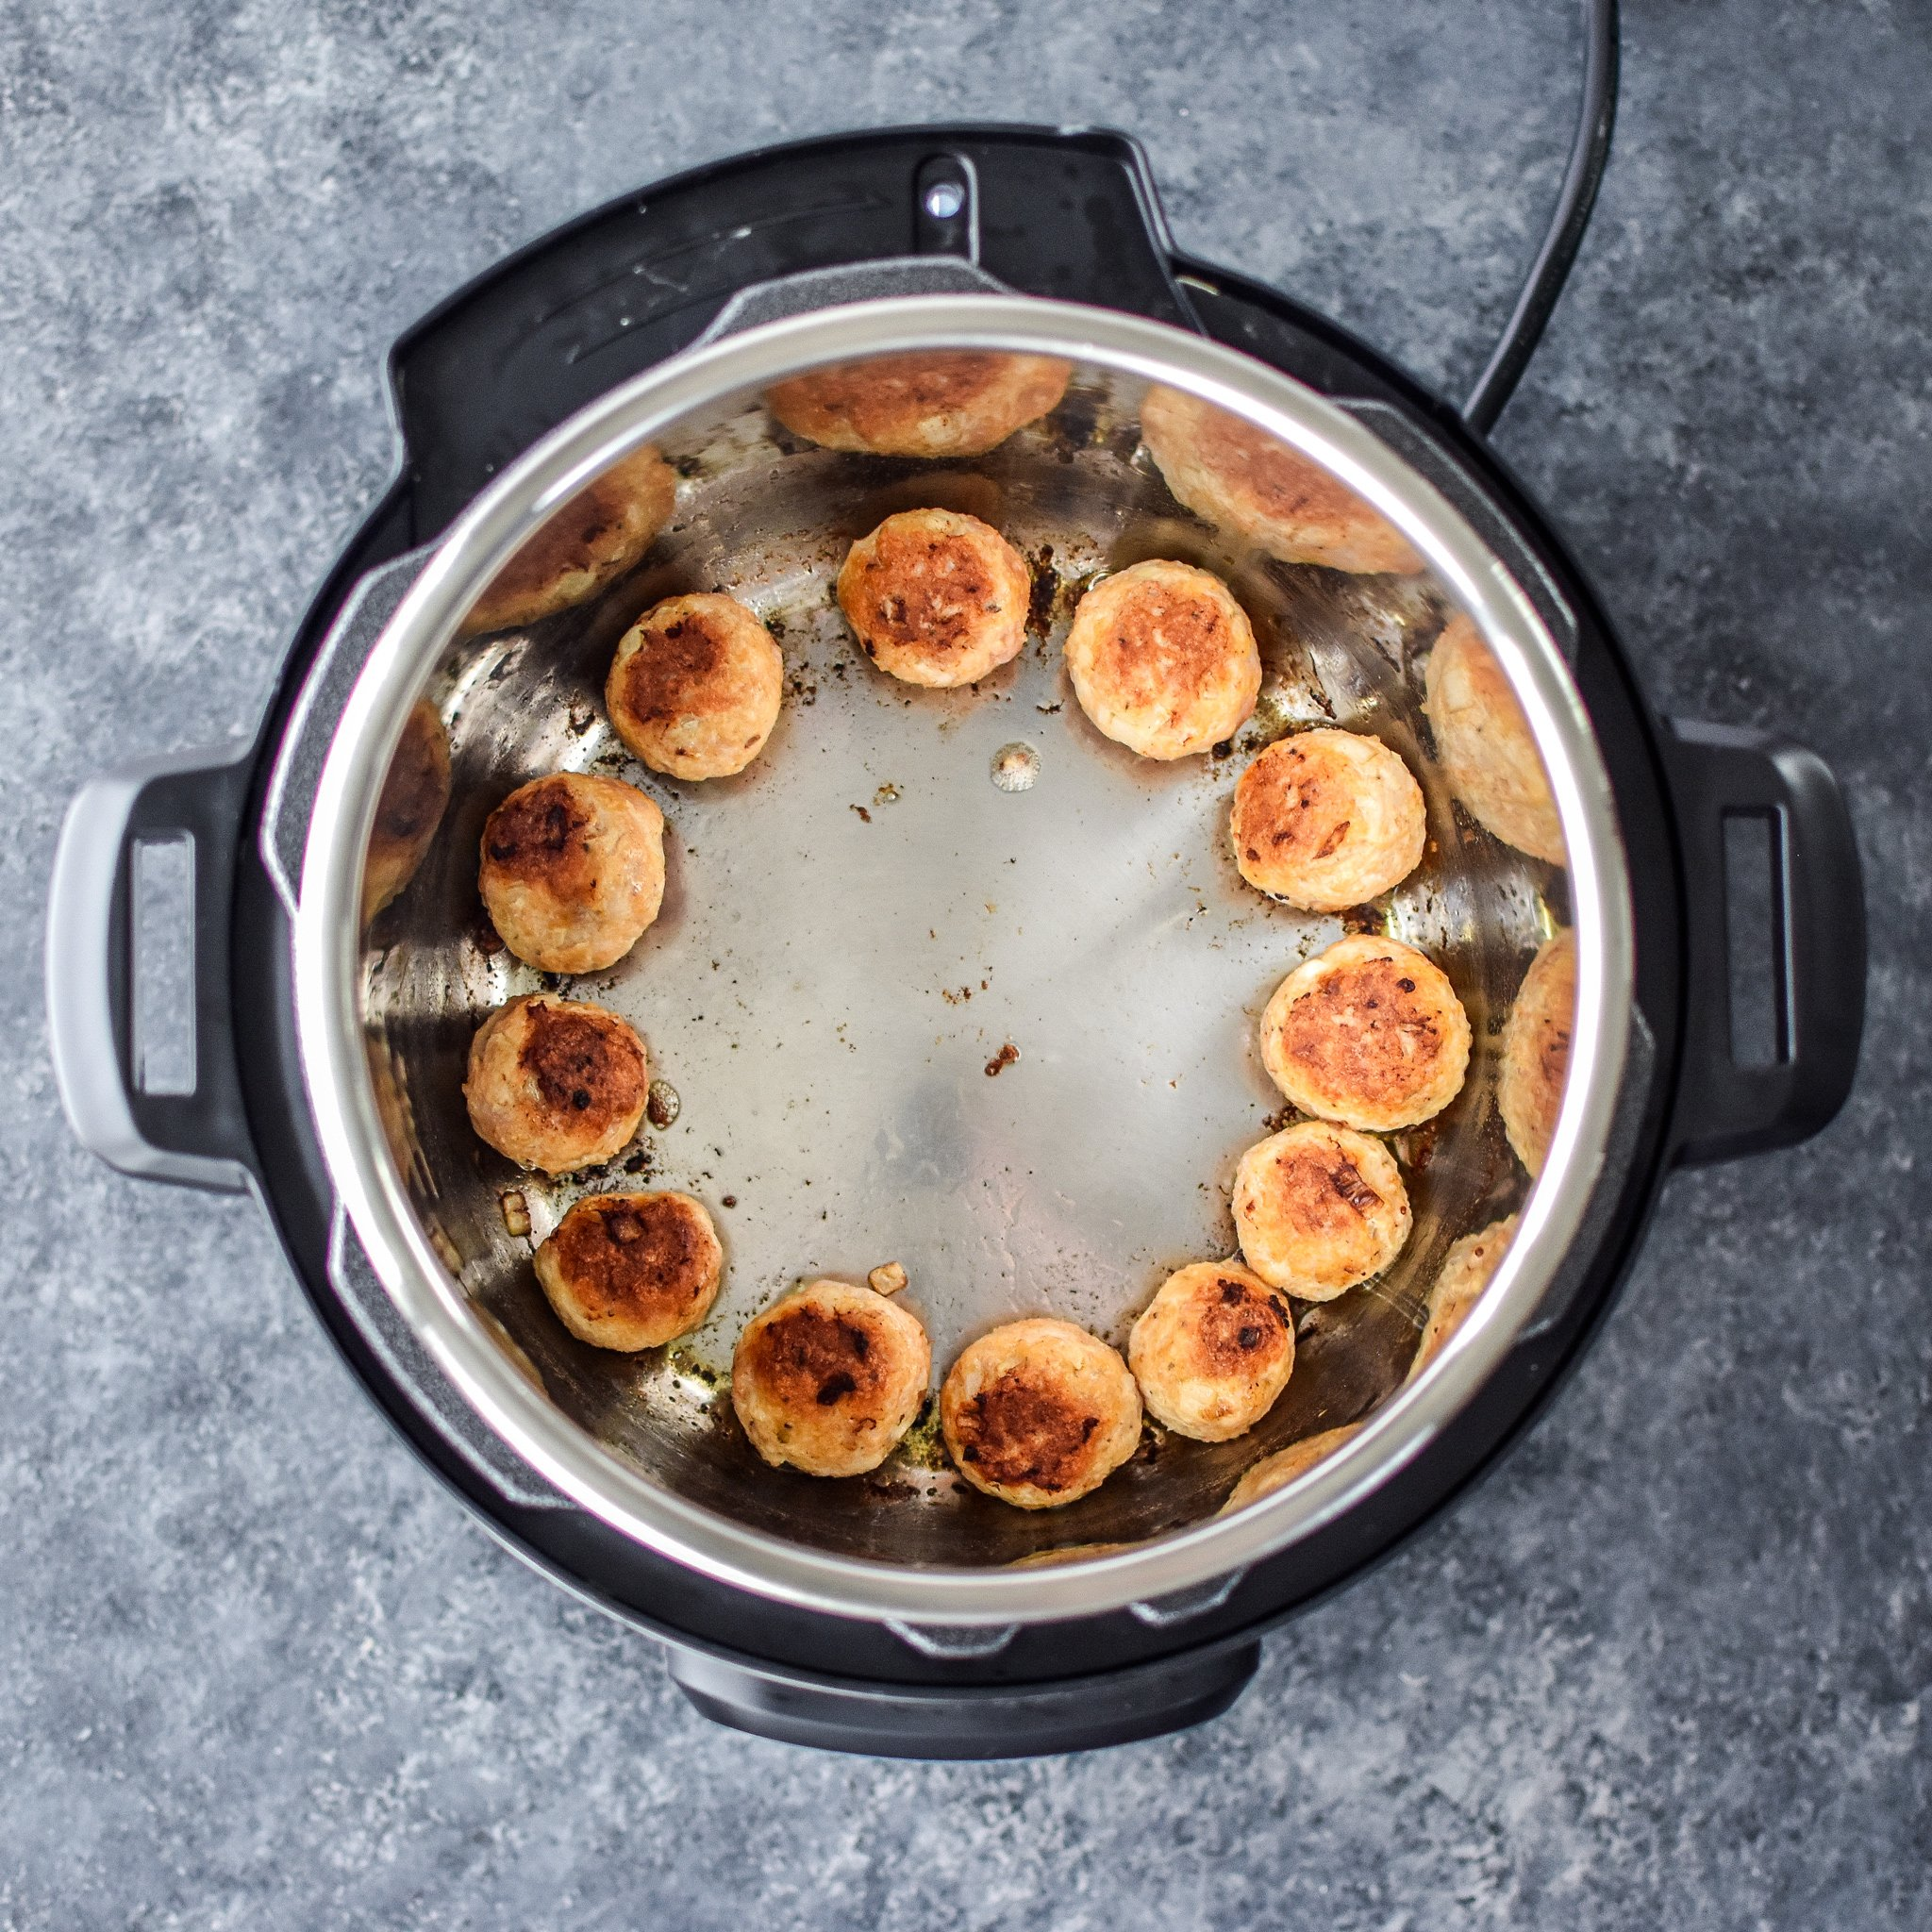 Chicken meatballs browning in an Instant Pot.